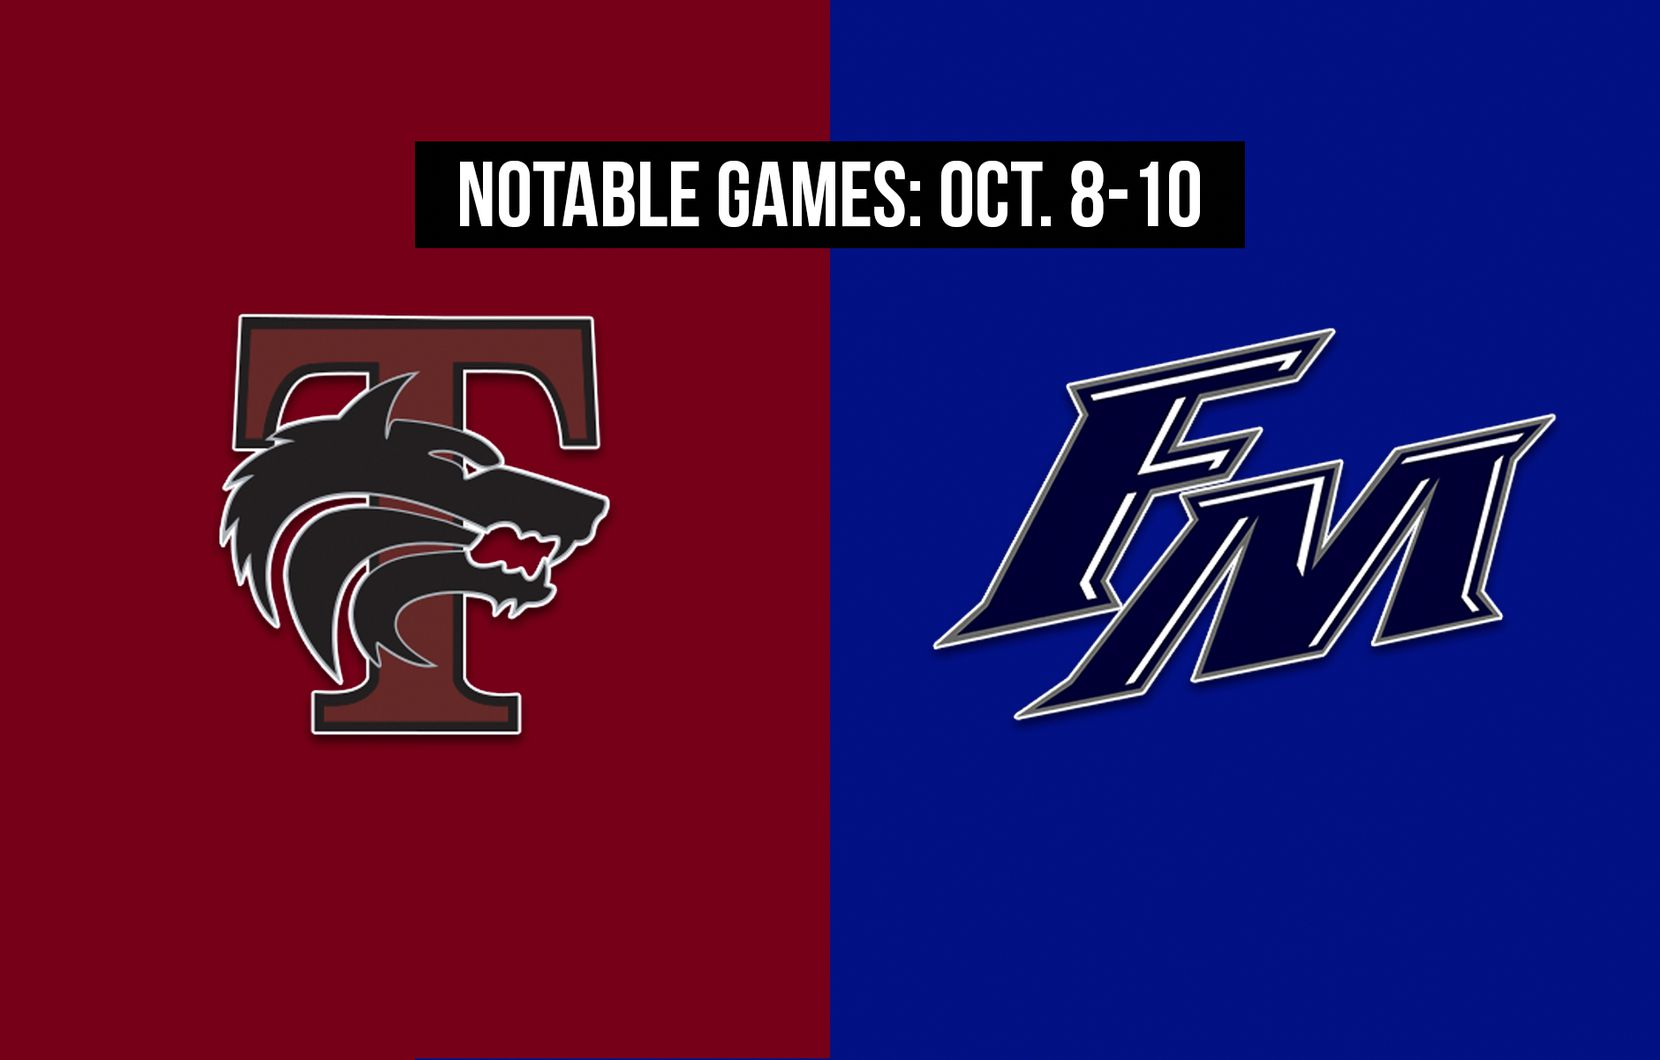 Notable games for the week of Oct. 8-10 of the 2020 season: Mansfield Timberview vs. Flower Mound.